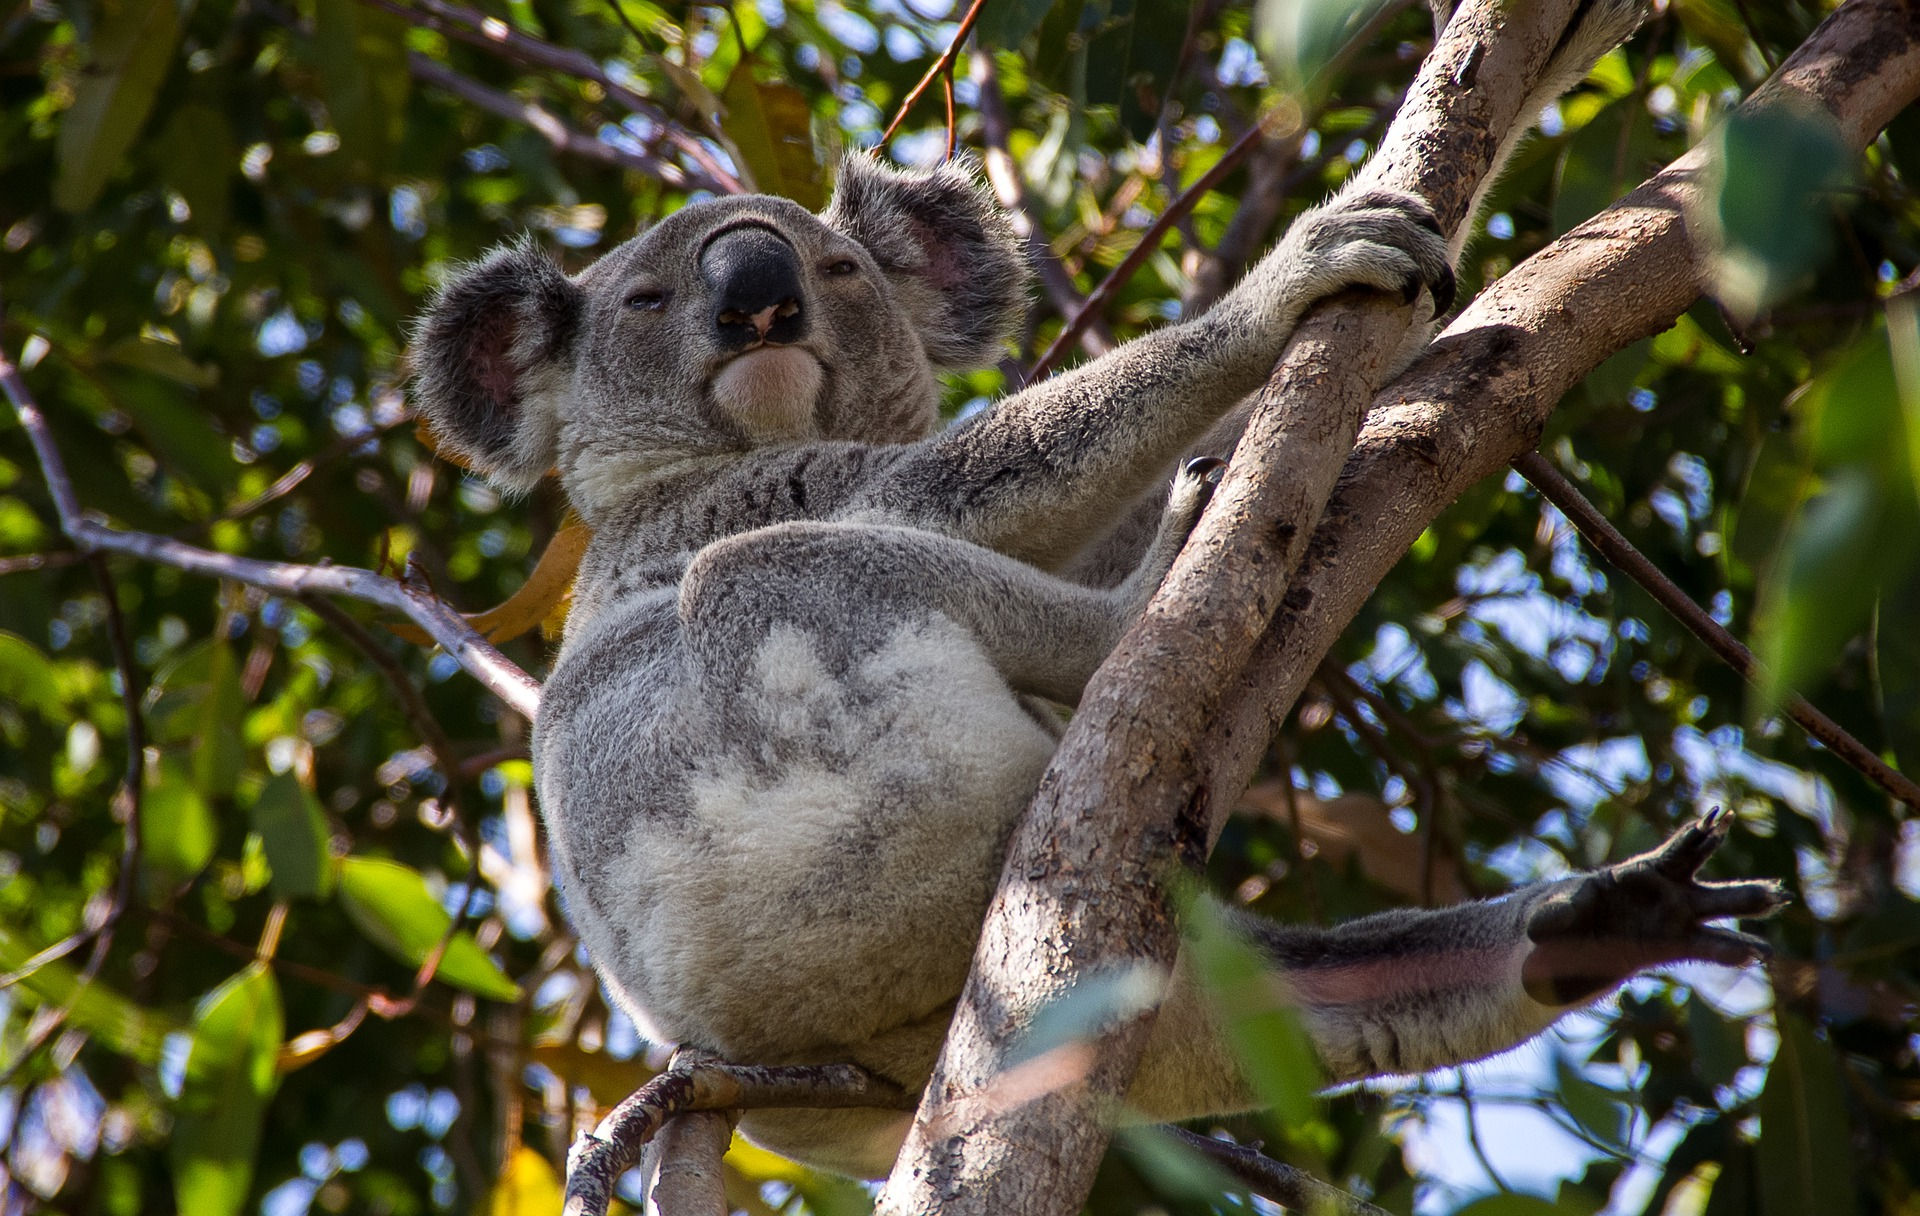 koala-bear in tree in Australia